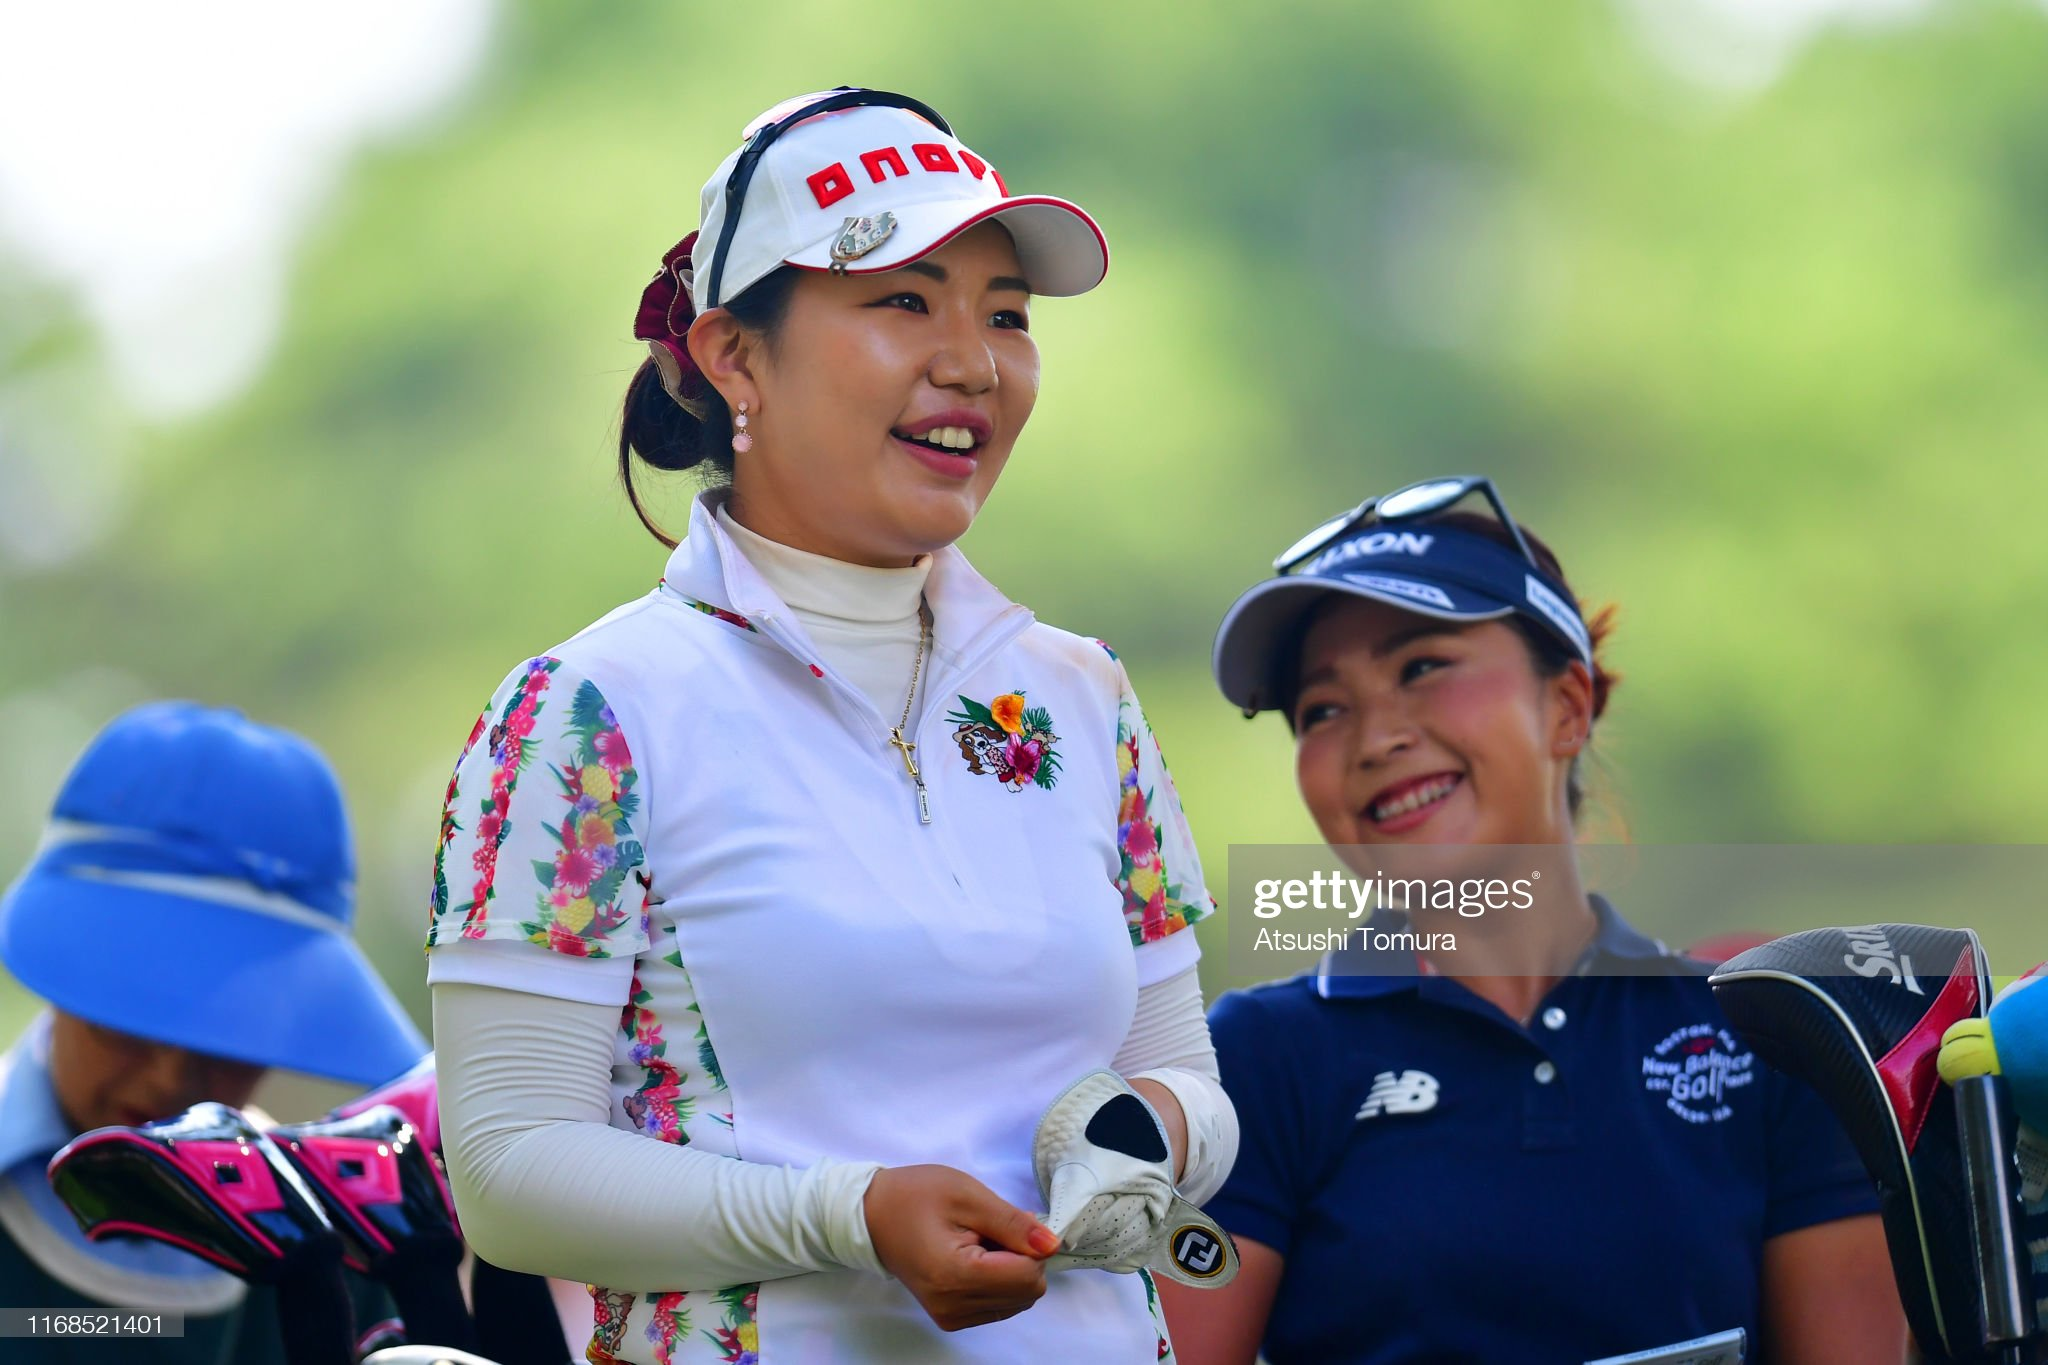 https://media.gettyimages.com/photos/ahreum-hwang-of-south-korea-smiles-after-her-tee-shot-on-the-17th-picture-id1168521401?s=2048x2048